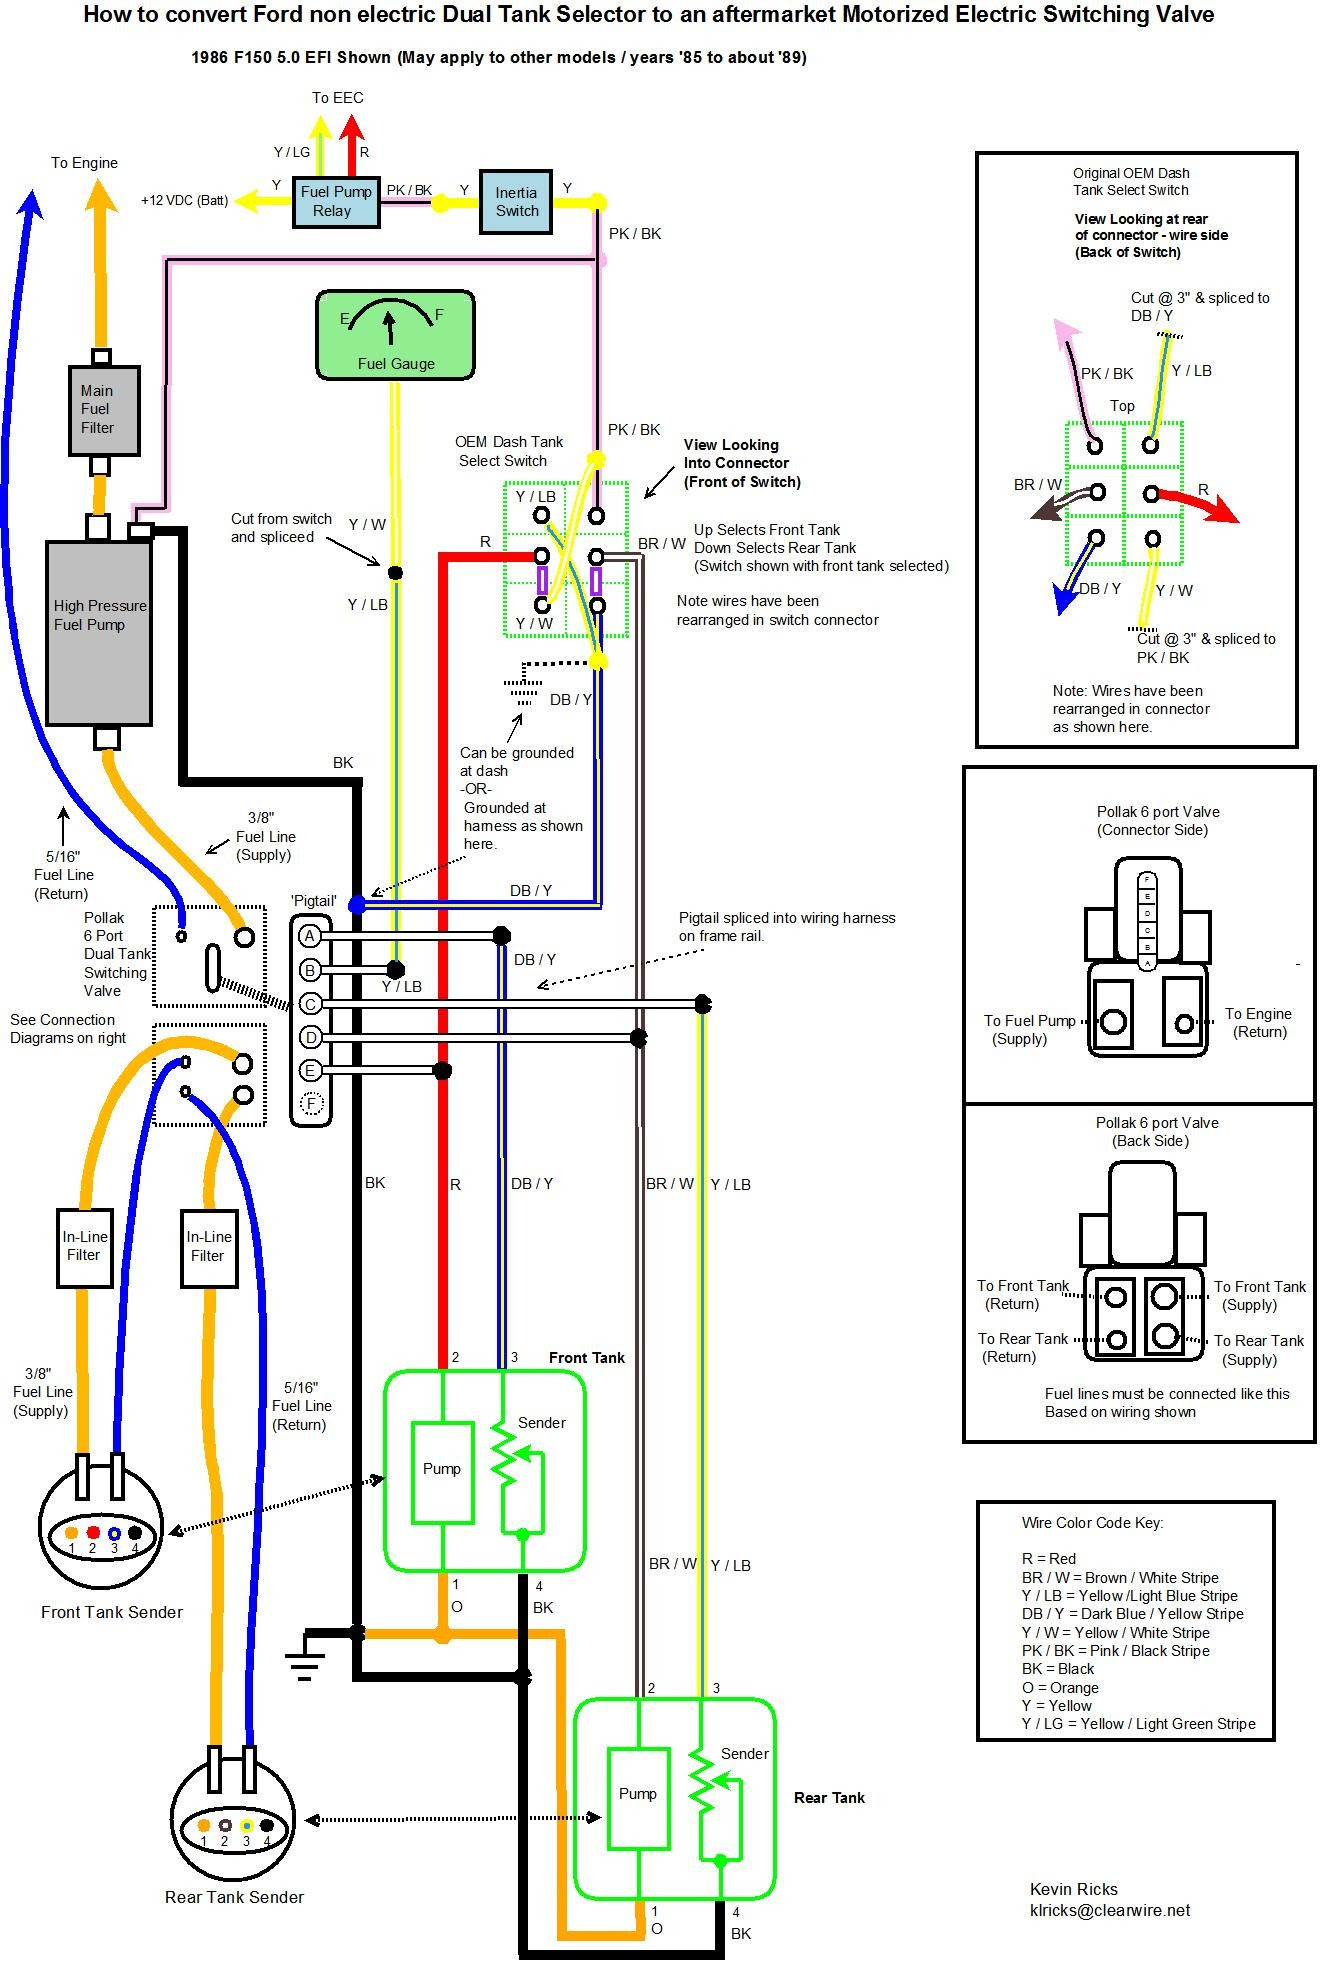 1995 Ford F 150 Fuel Pump Wiring Diagram Wiring Diagram System Sick Norm Sick Norm Ediliadesign It